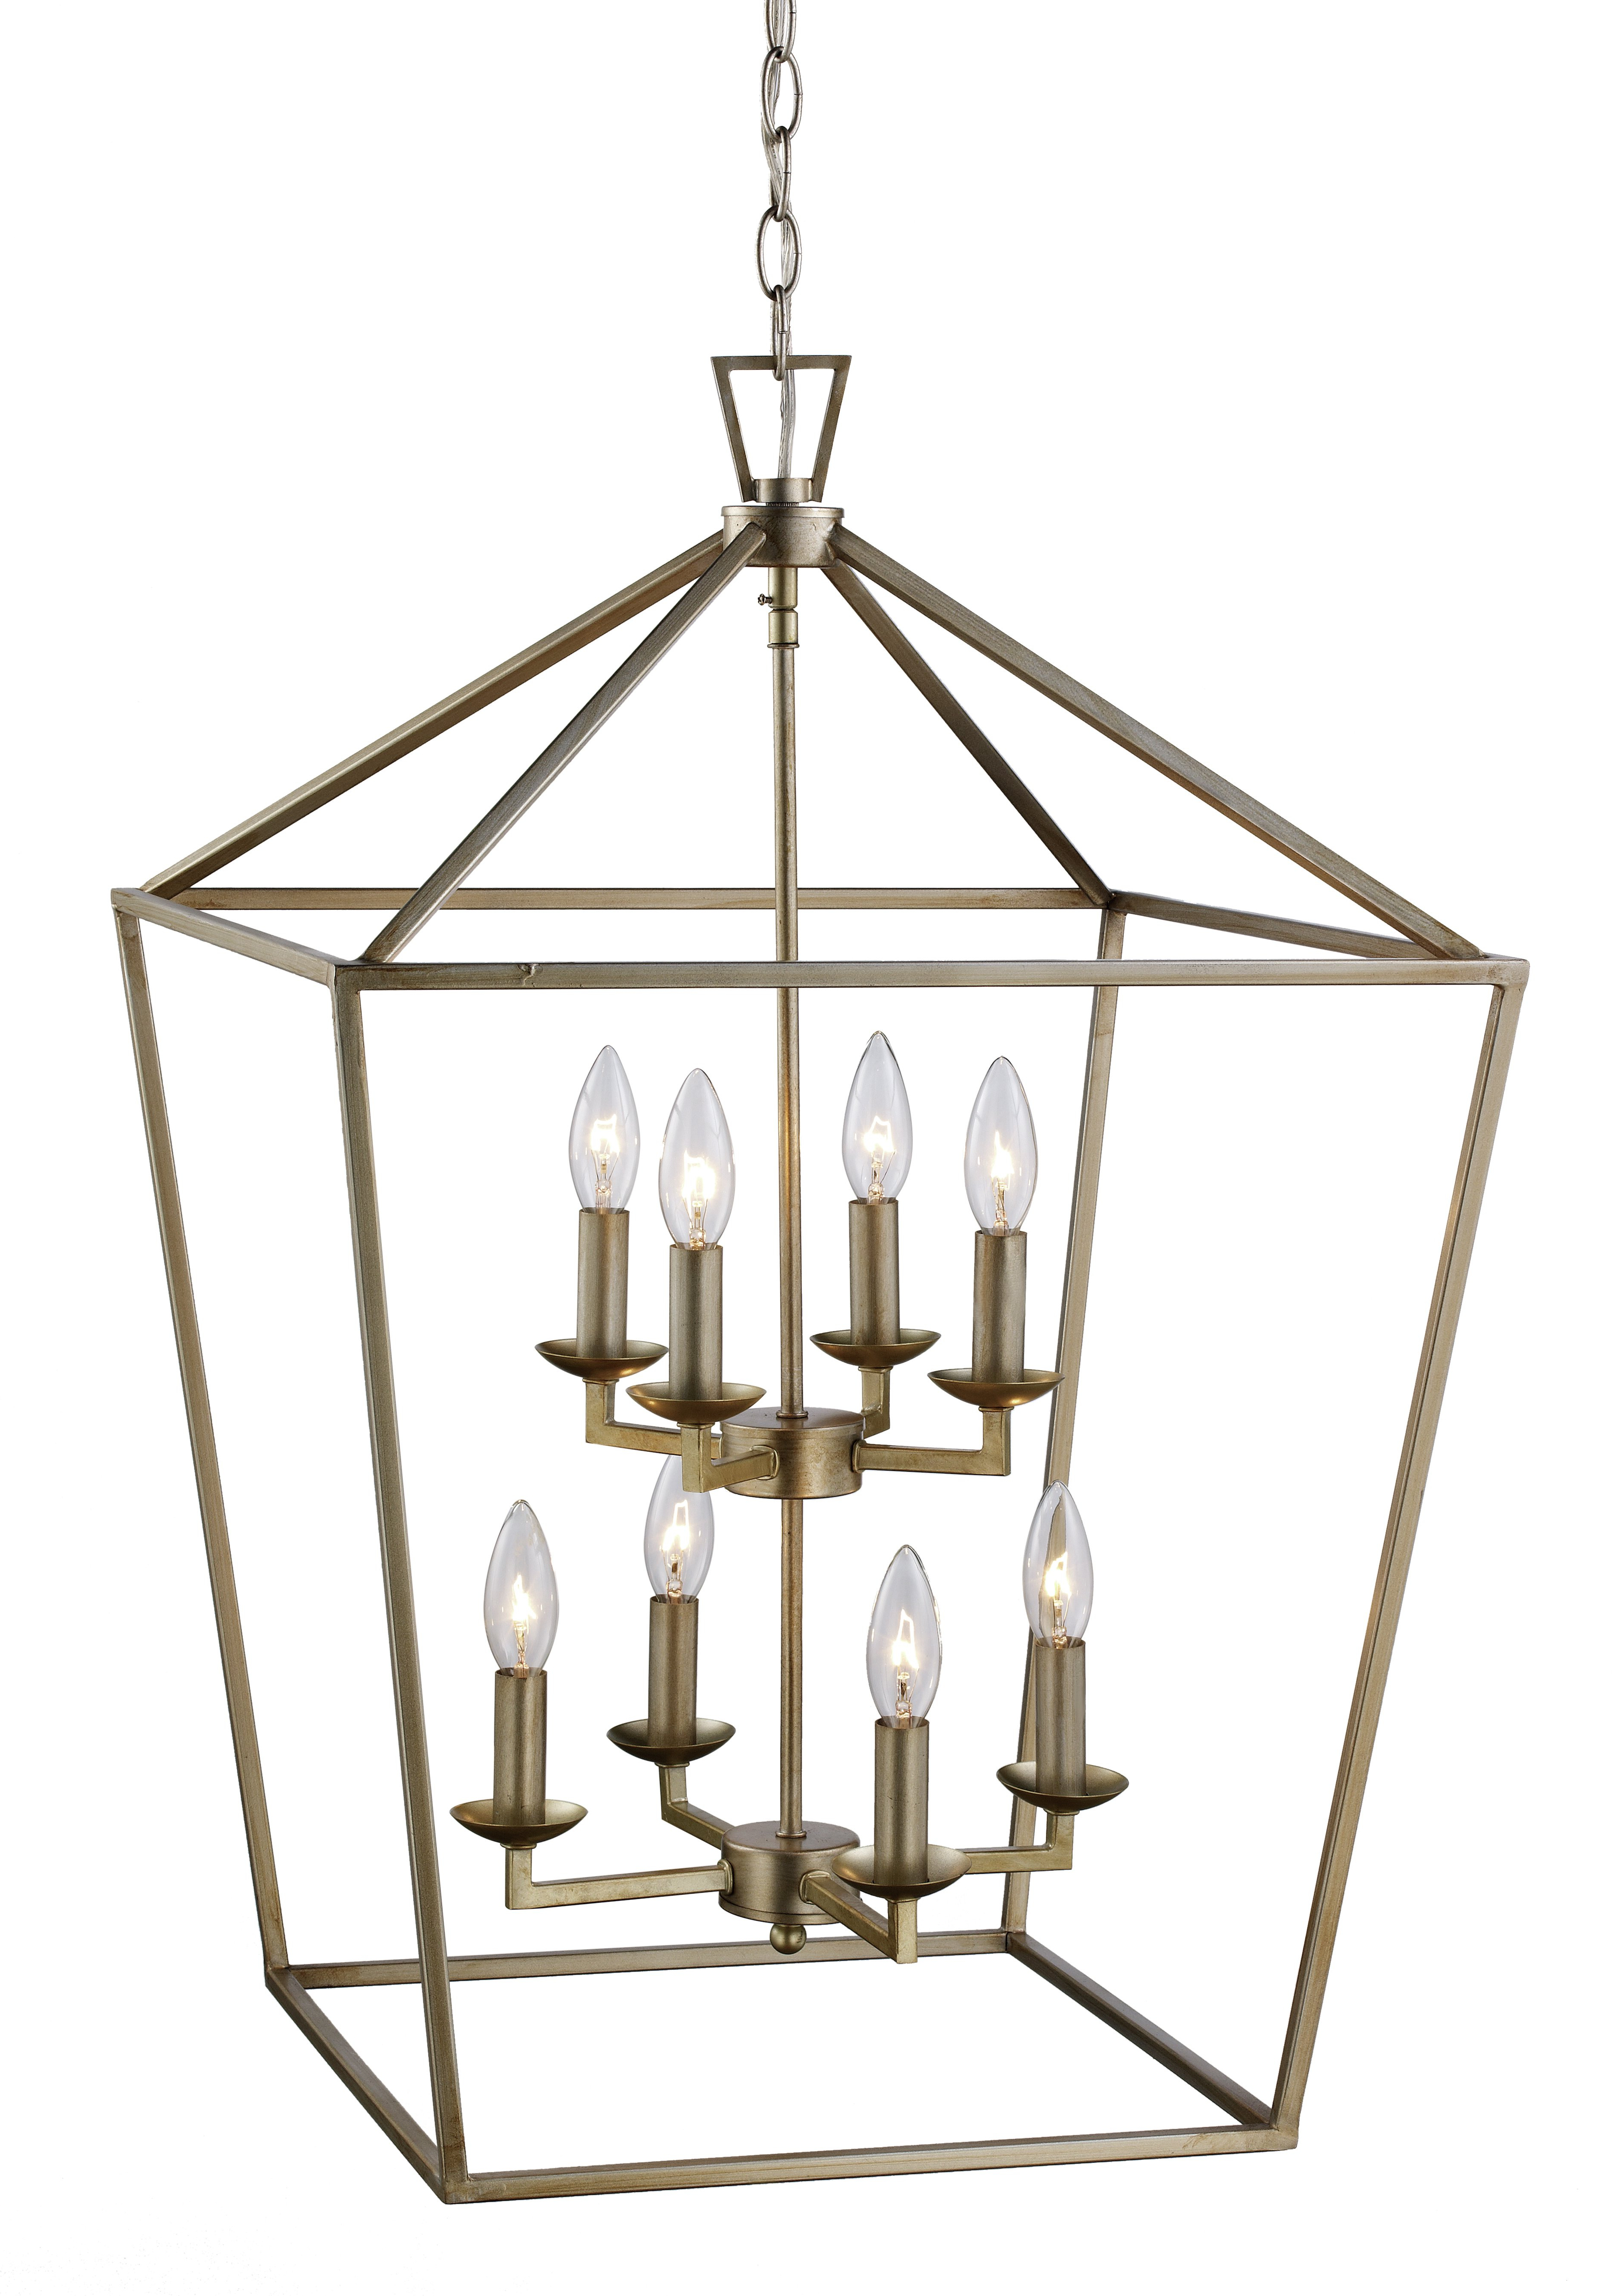 Carmen 8 Light Lantern Tiered Pendants Within Most Up To Date Carmen 8 Light Lantern Geometric Pendant (View 2 of 20)